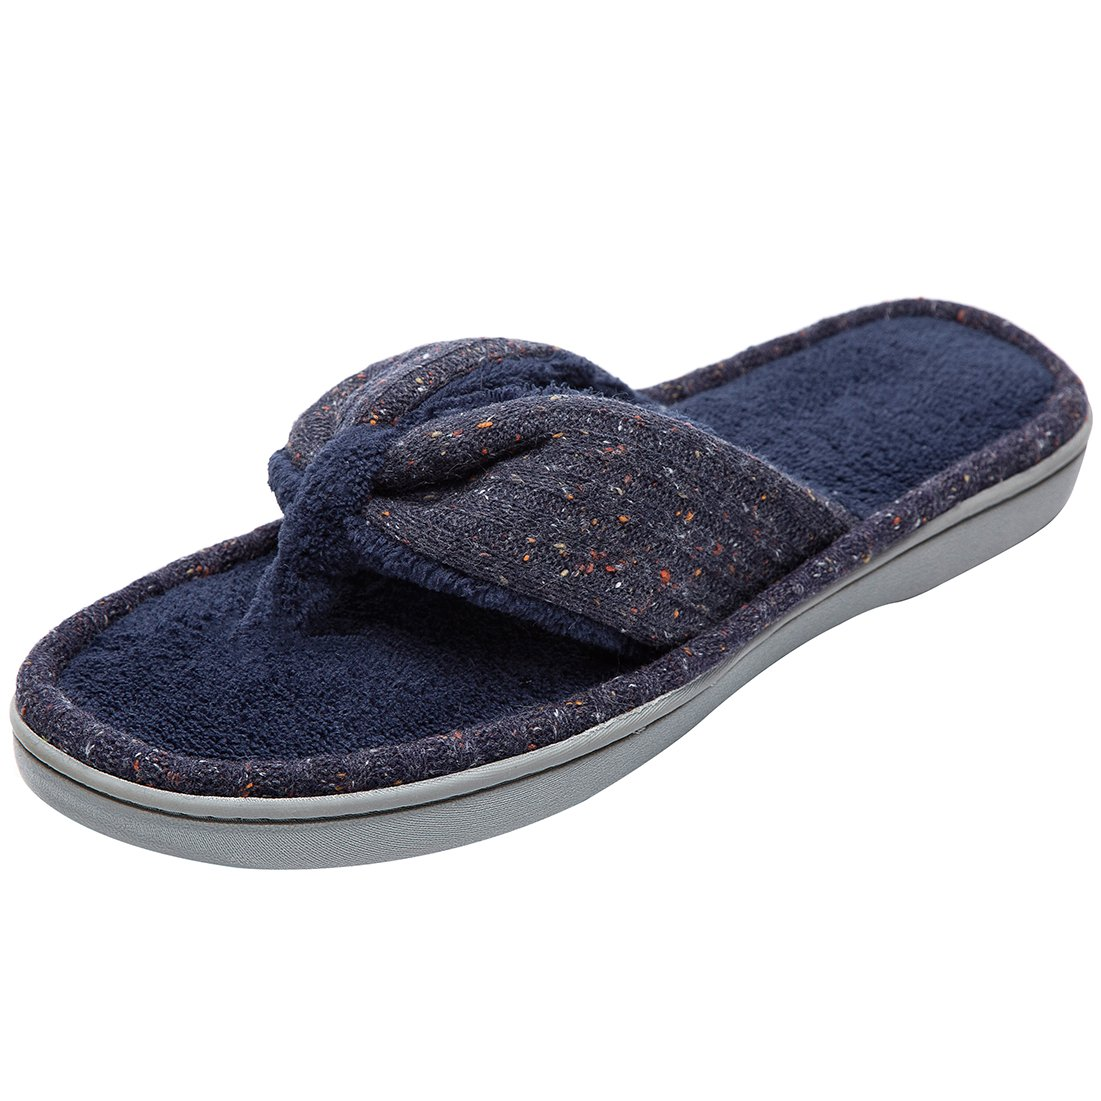 Women's Soft & Comfy Knitted Plush Fleece Lining Memory Foam Spa Thong Flip Flops House Slippers (Large/9-10 B(M) US, Navy Blue) by HomeTop (Image #2)